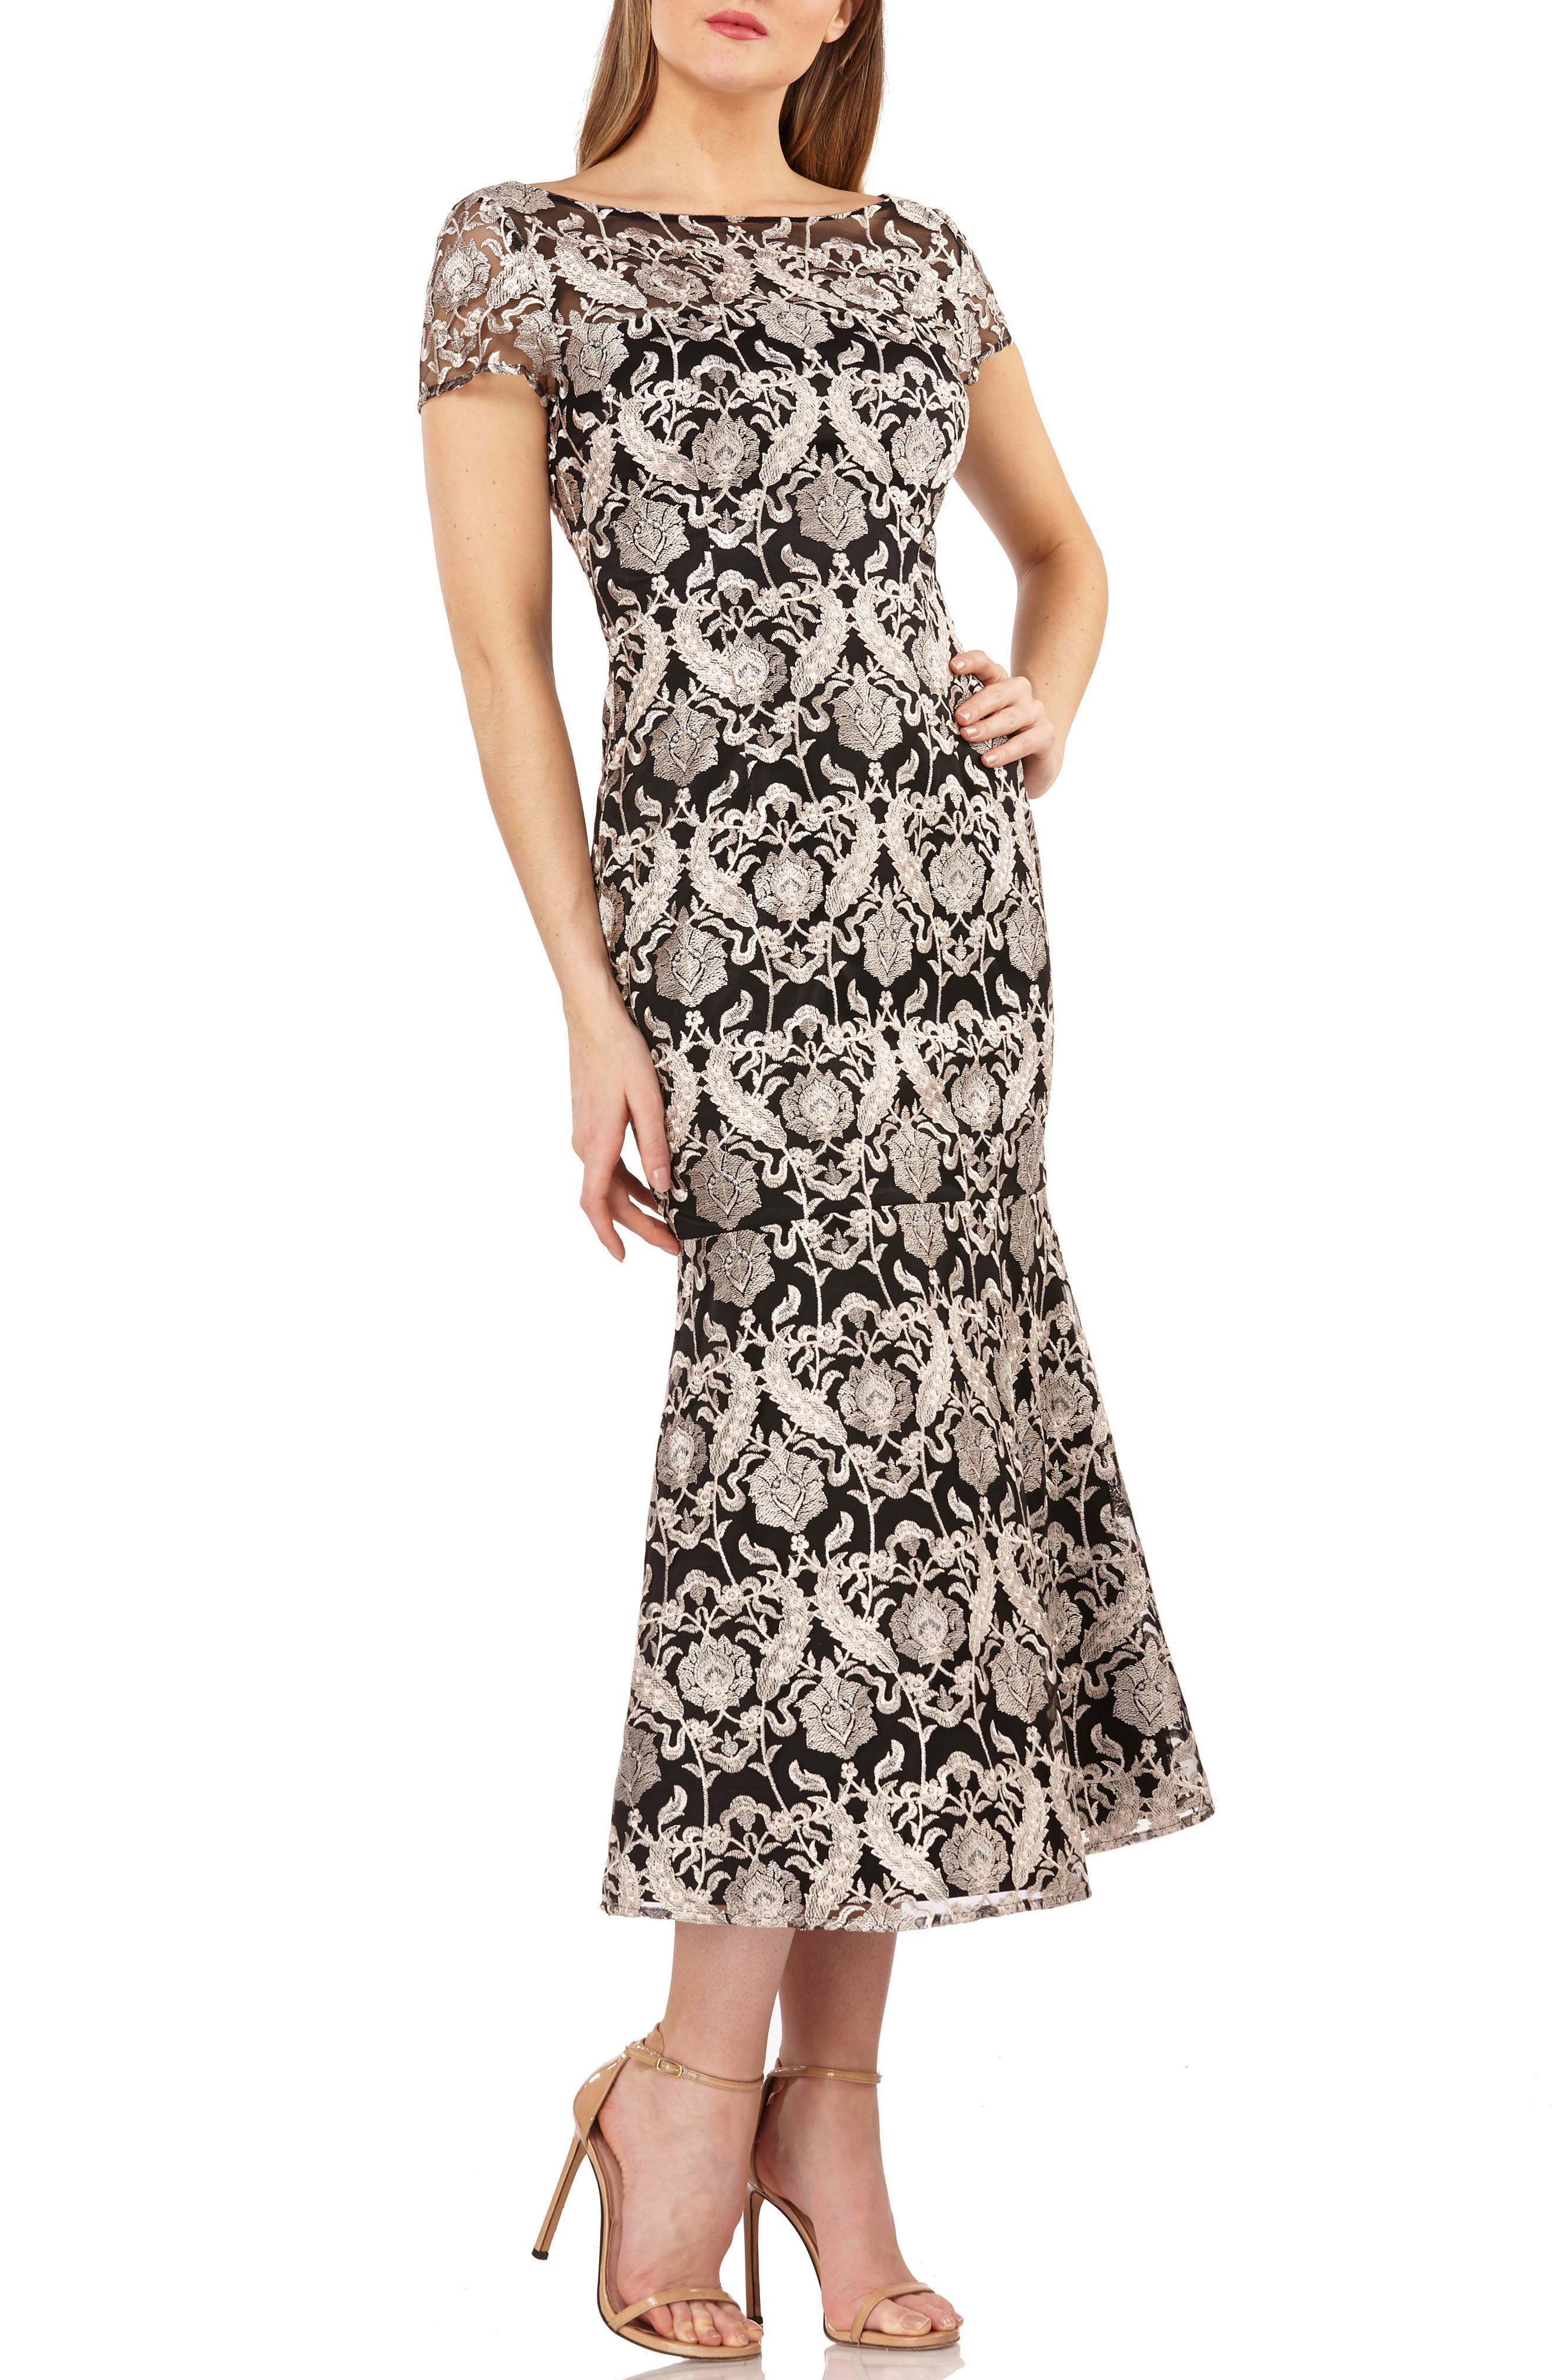 Js Collections Embroidered Midi Dress, Black